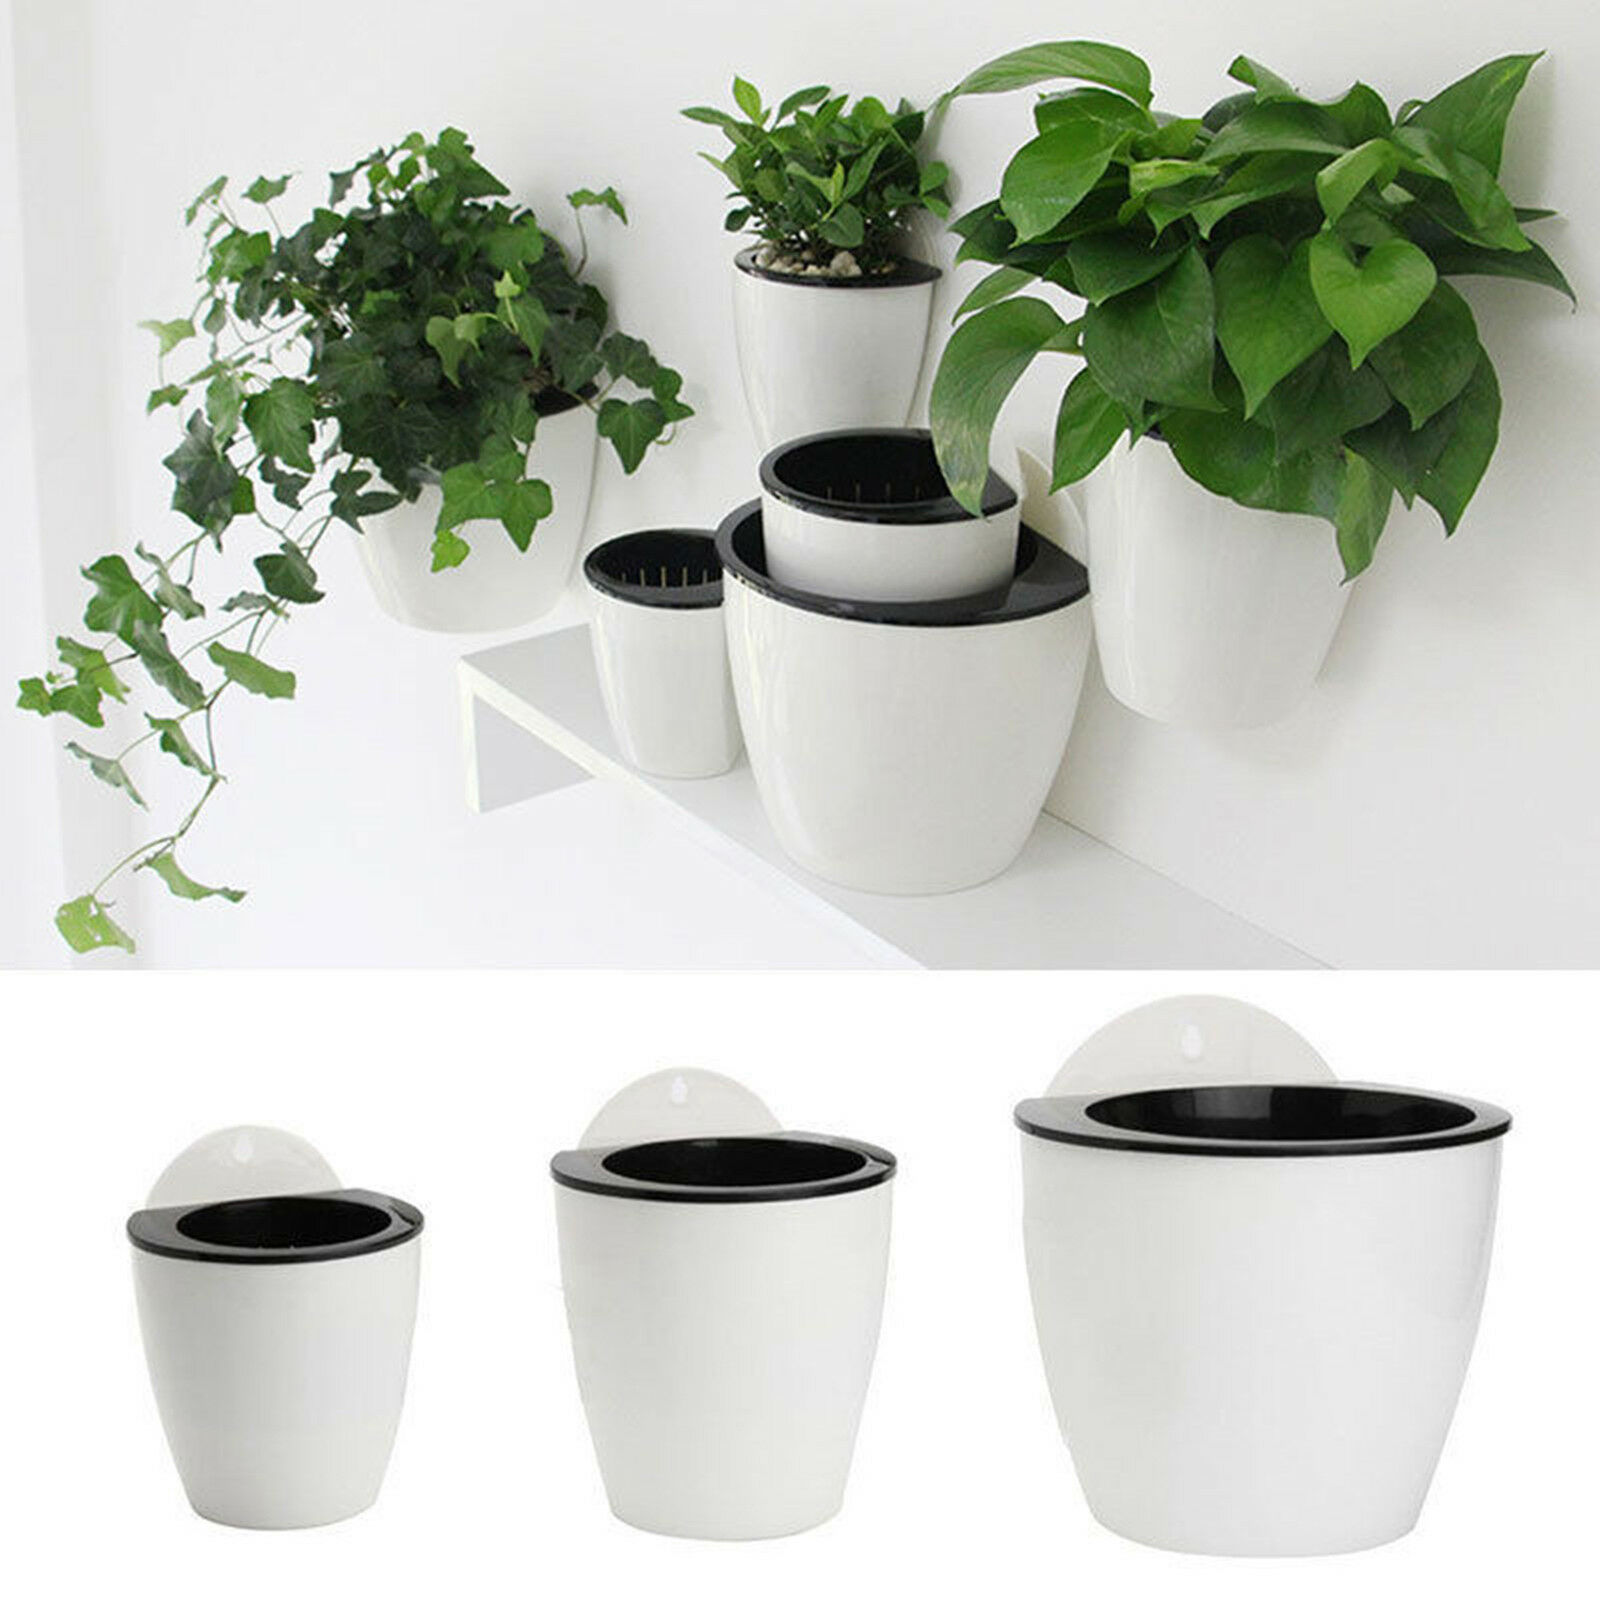 Creative Self Watering Plant Flower Pot Wall Hanging